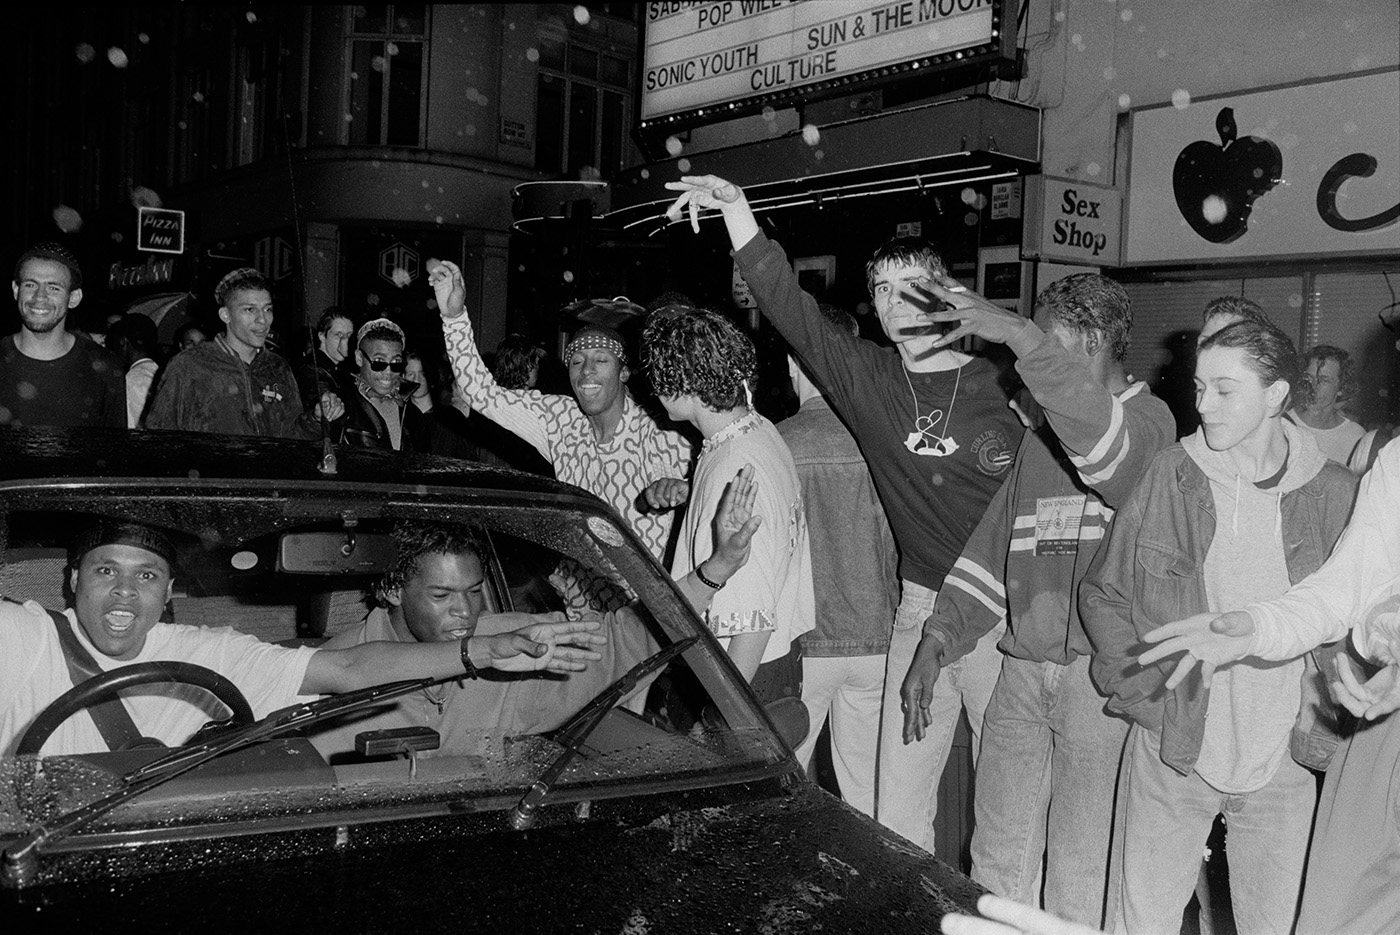 Ravers dancing outside acid house club 'The Trip' at Astoria during the Second Summer of Love, London, 1988 by Marcus Graham